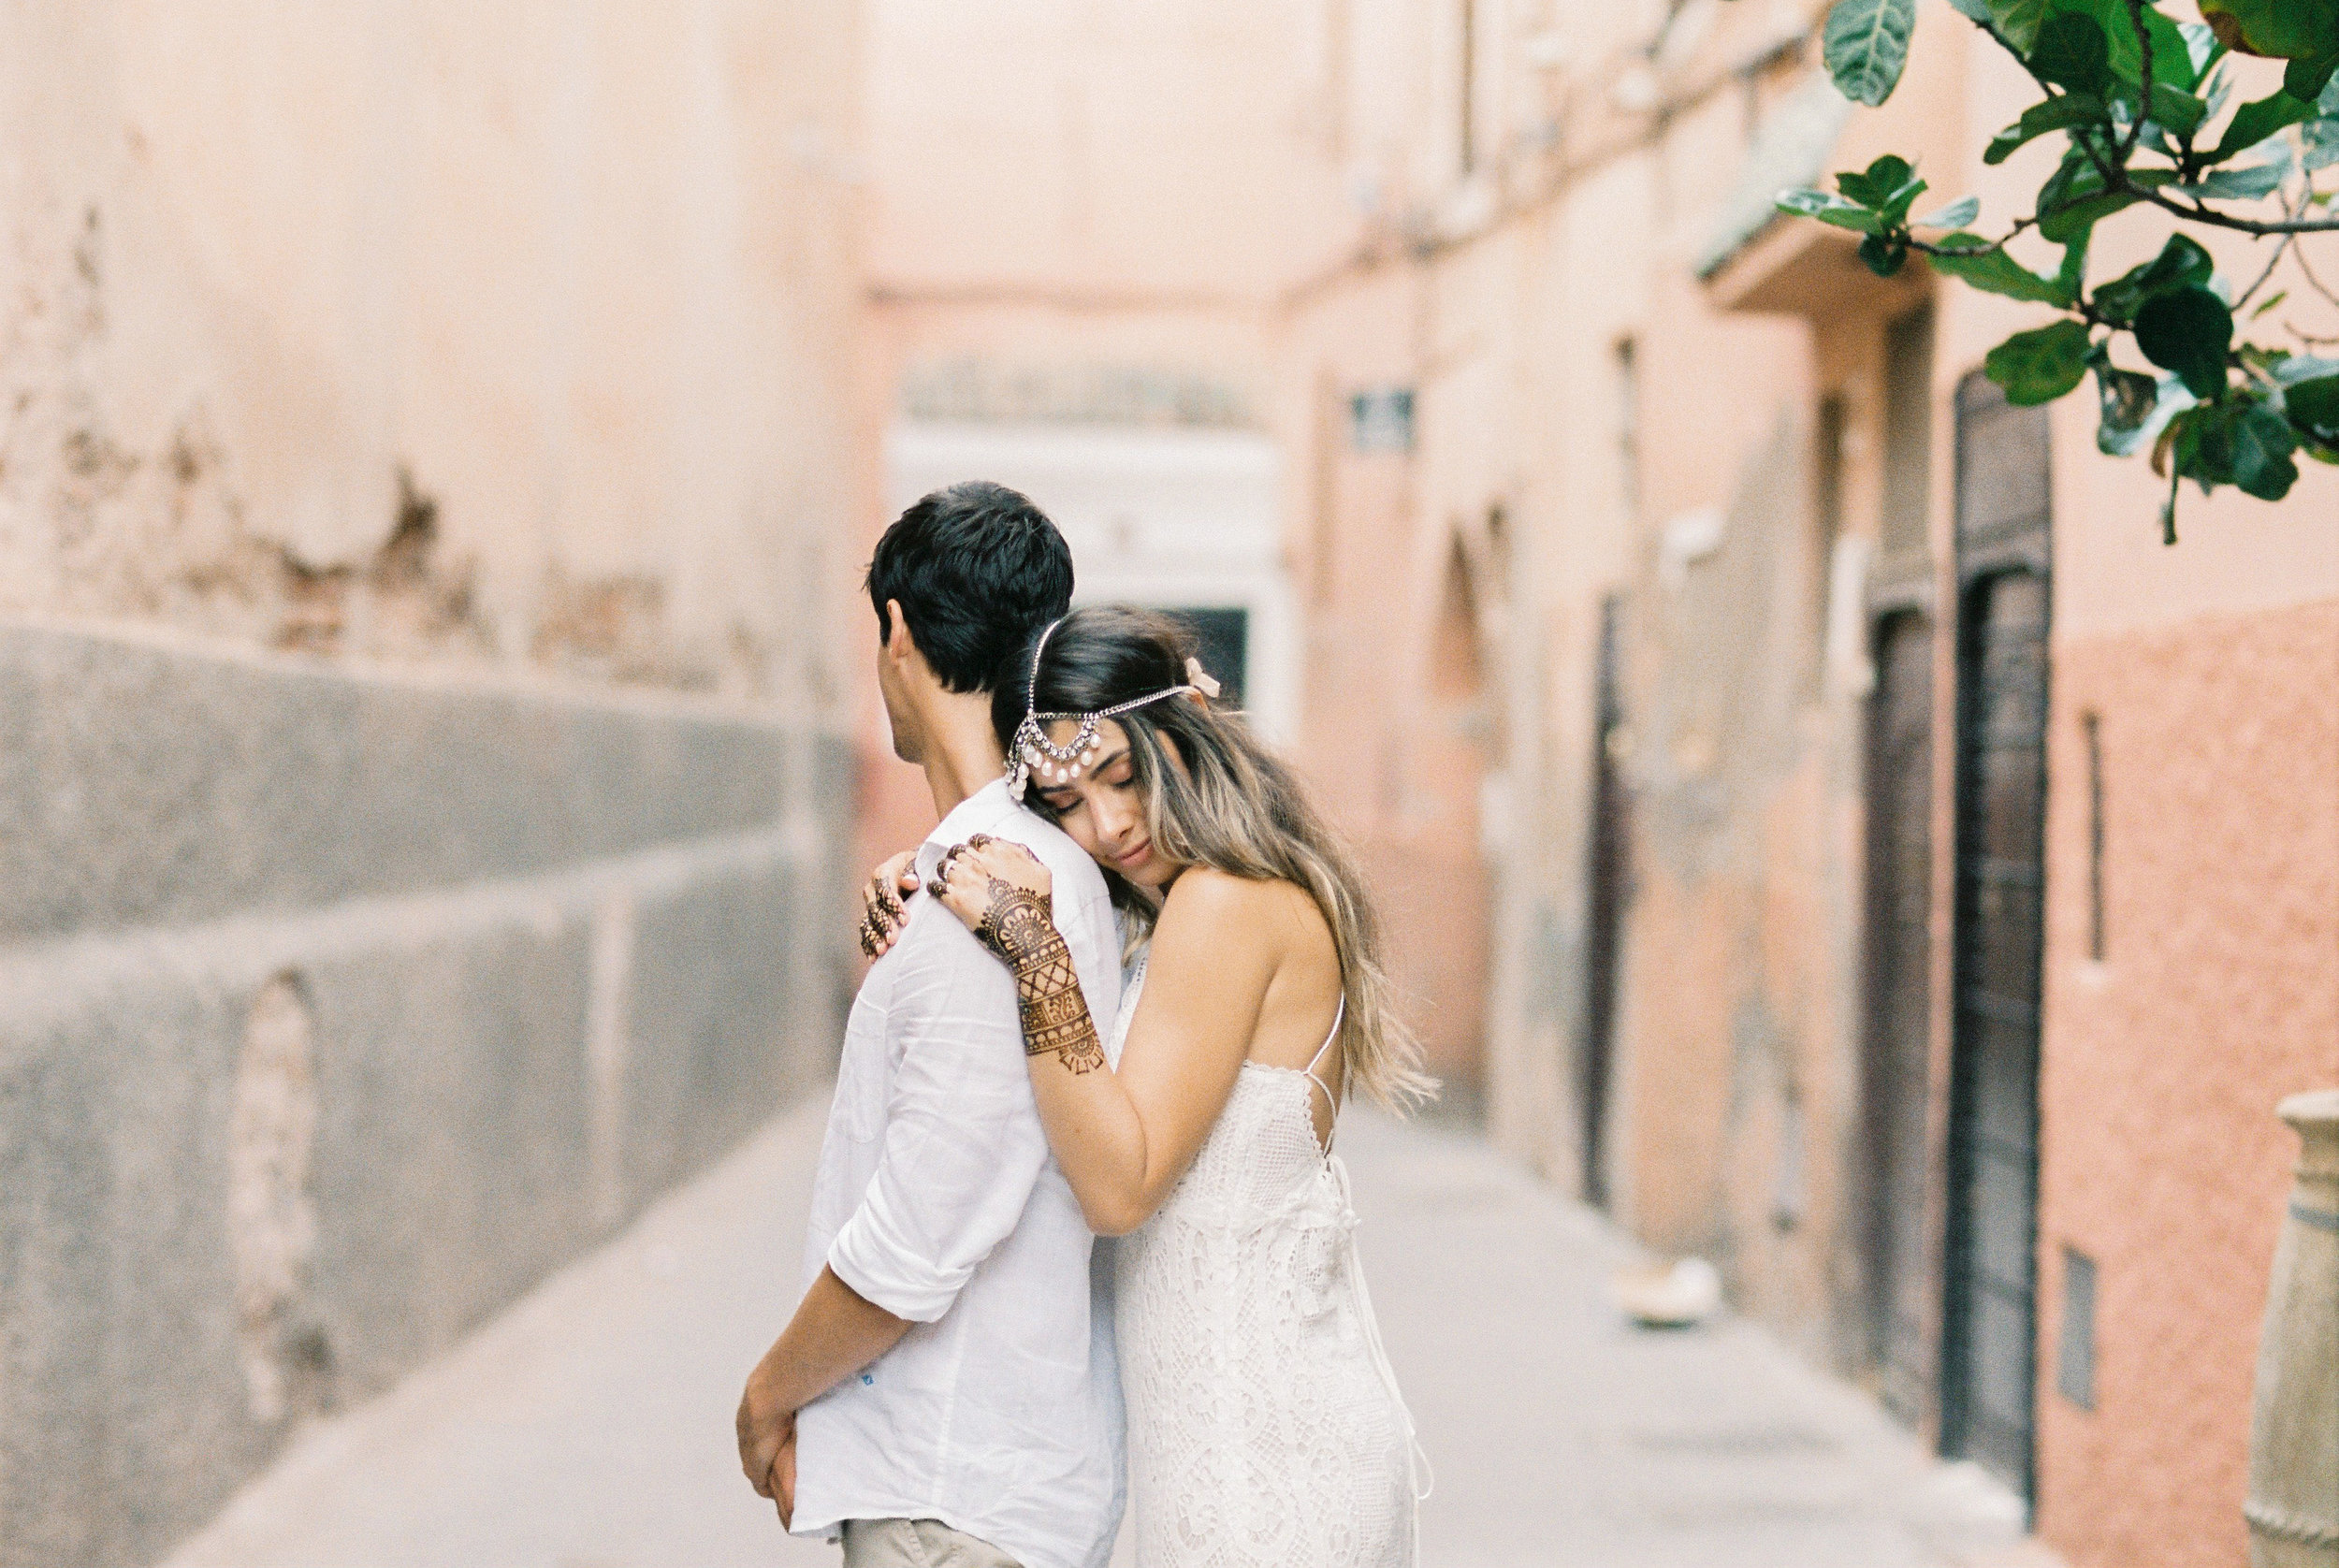 elopement-in-marrakesh-maria-rao-photography-37.jpg